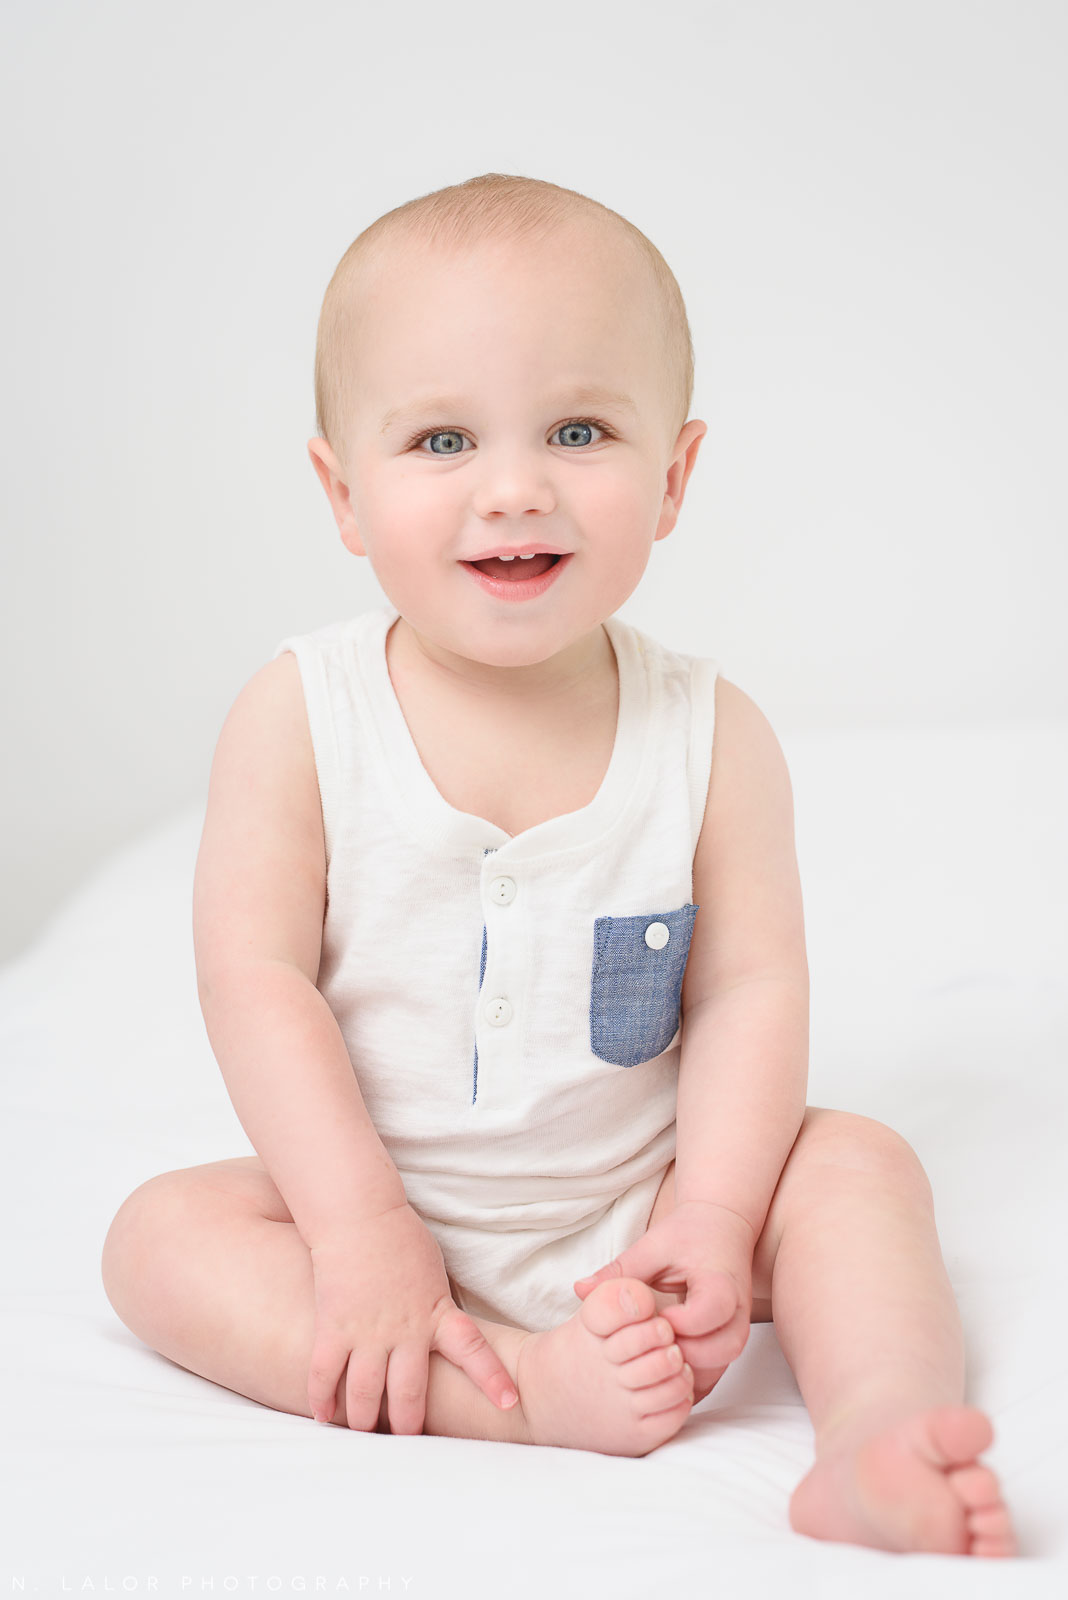 Happy 1-yr old! Studio baby milestone session with N. Lalor Photography in Greenwich, Connecticut.